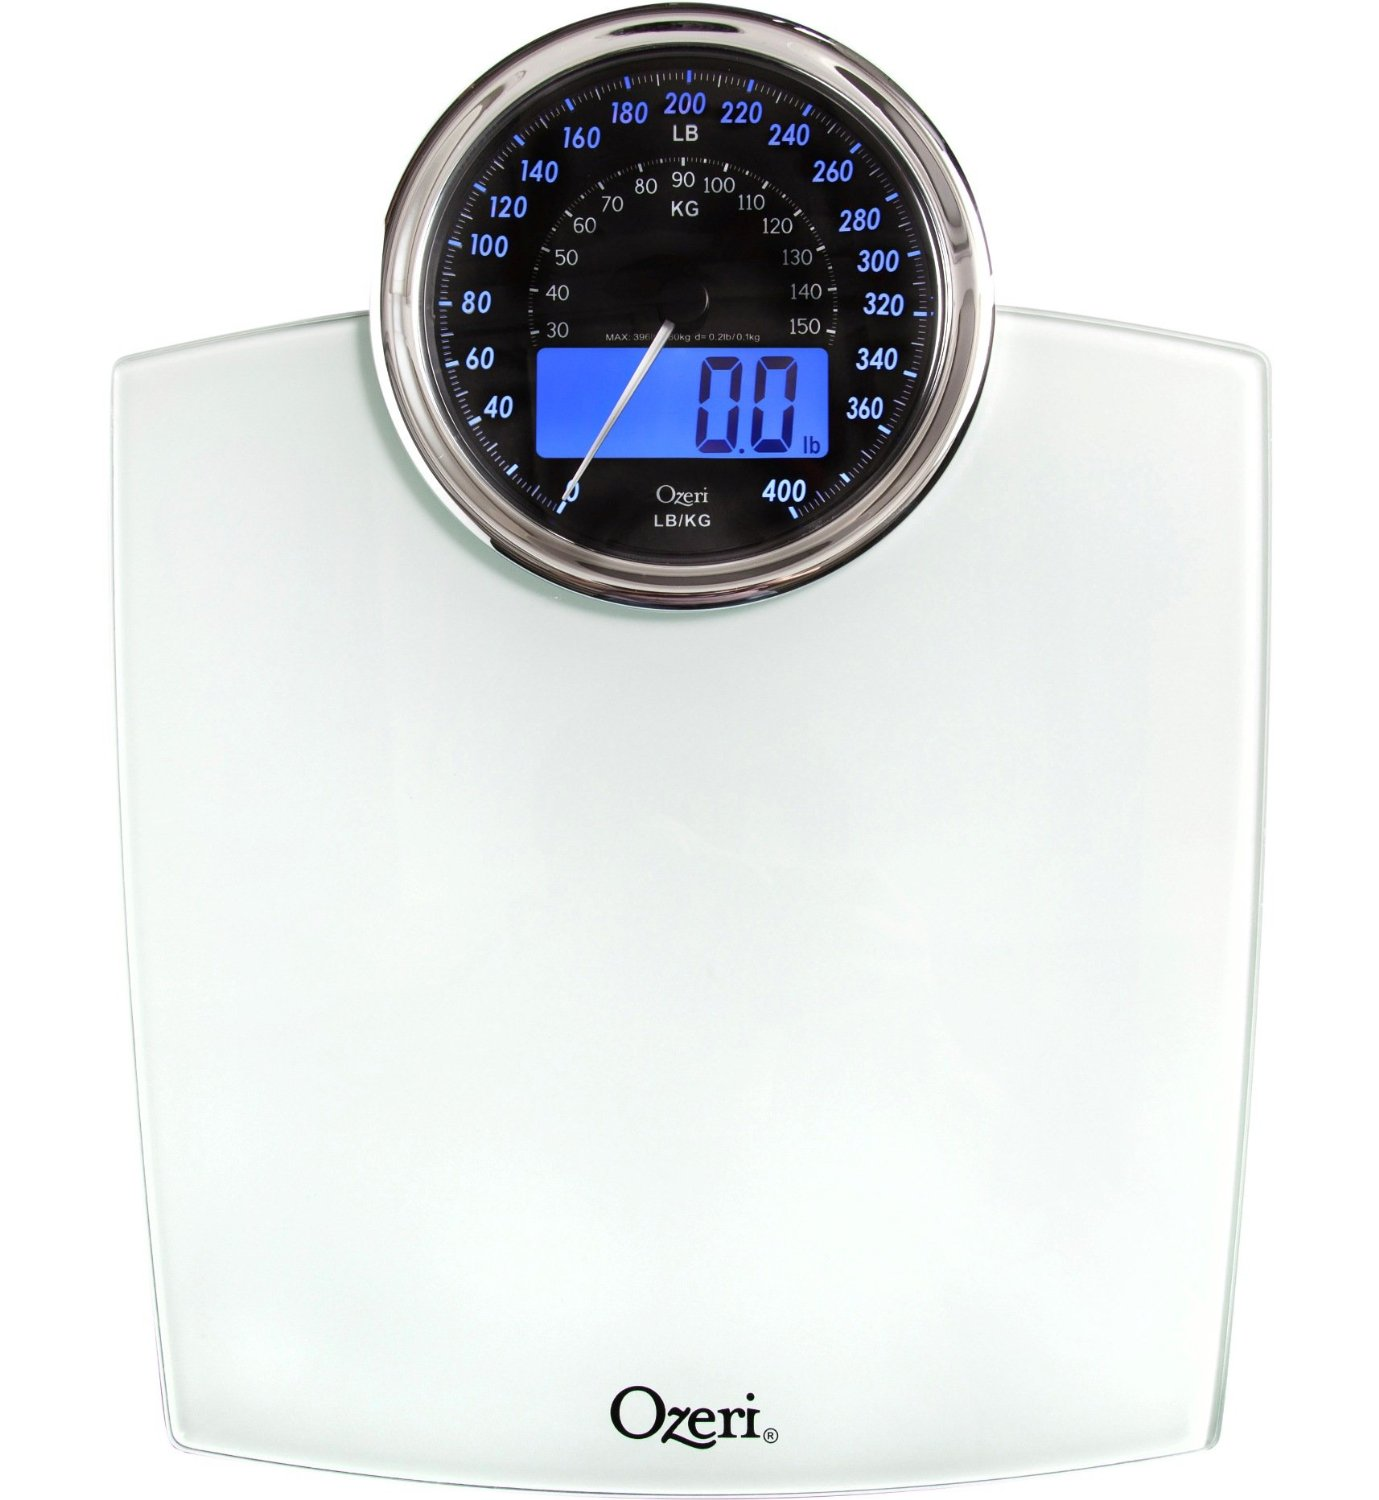 Ozeri Digital & Analog Bathroom Scale